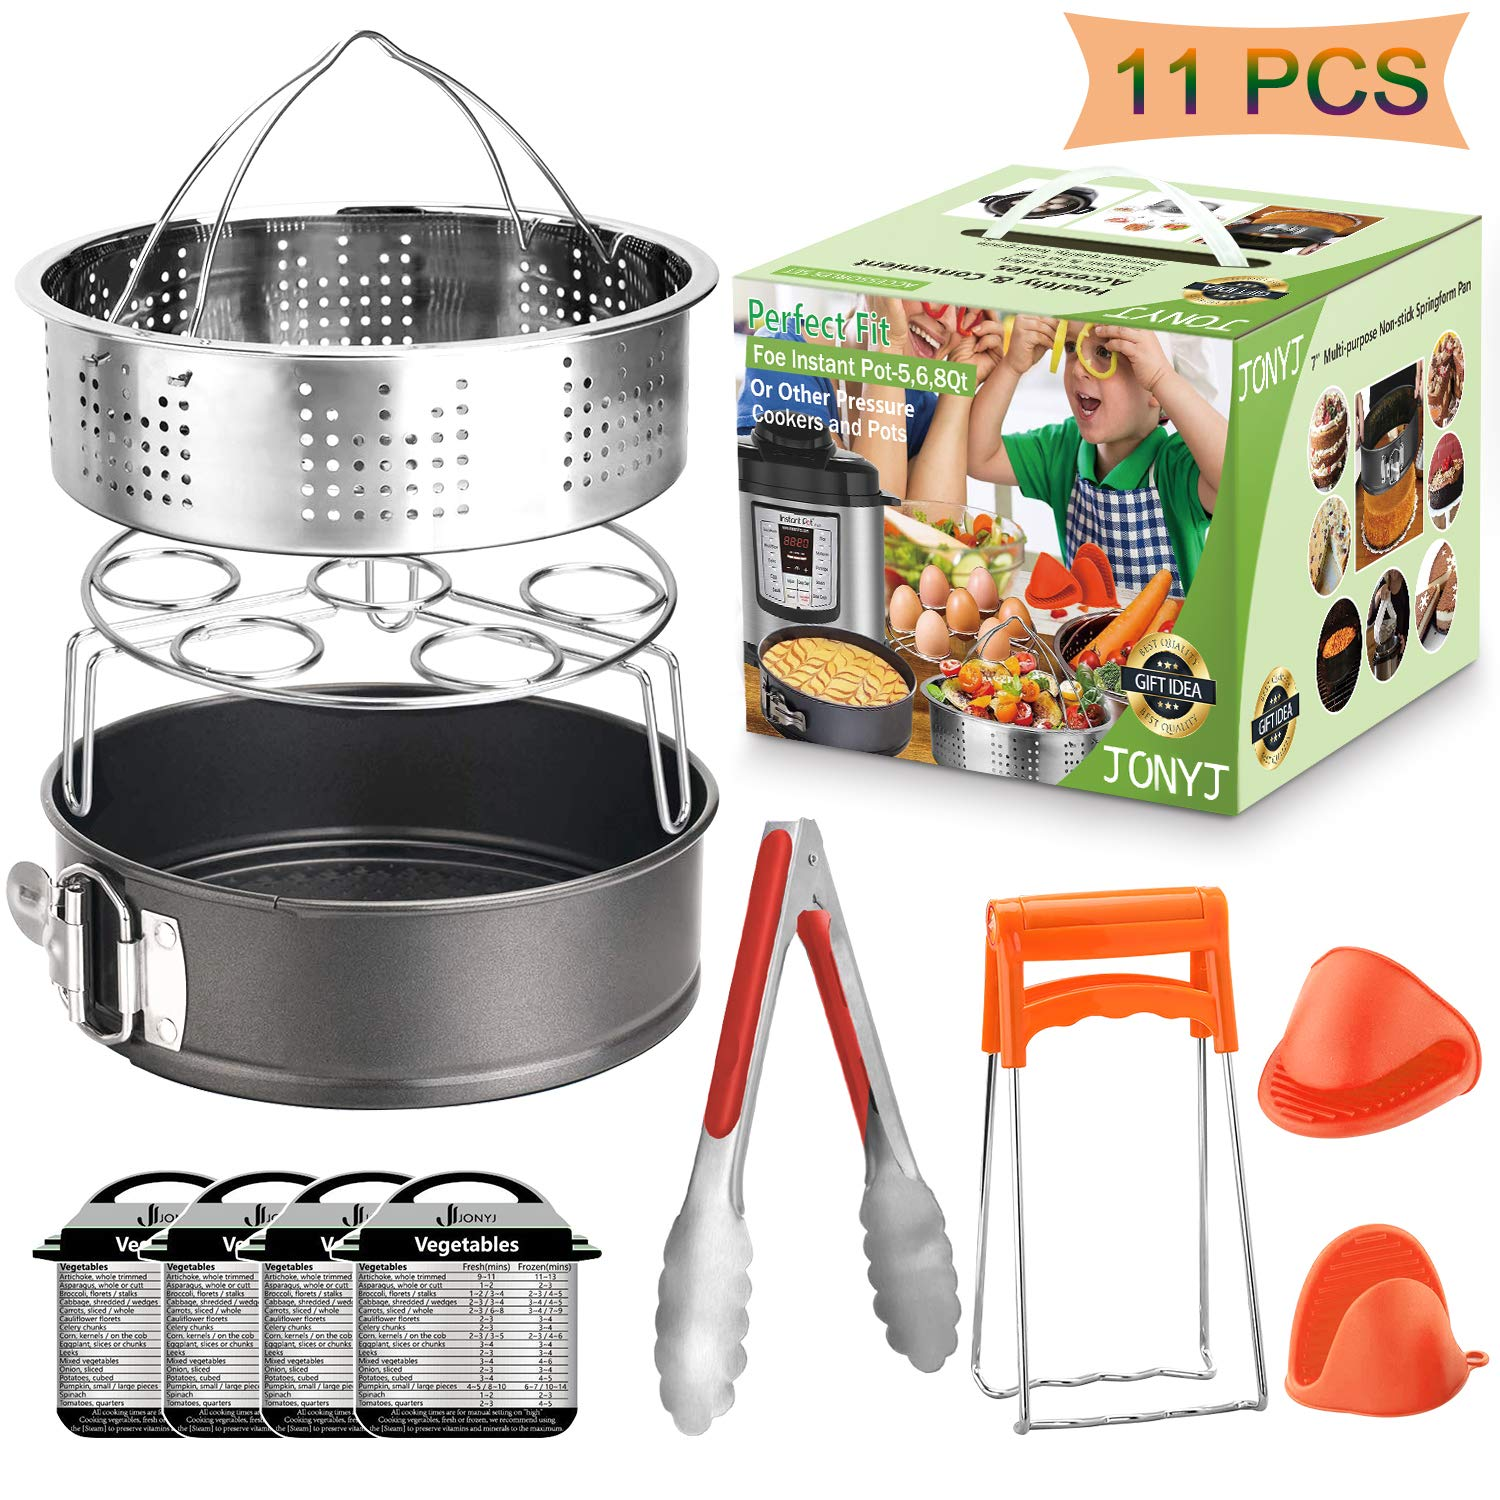 Instant Pot Accessories Set, 11-Piece Fit 5, 6, 8 Qt Instant Pot Accessories Compatible with Steamer Basket, Egg Rack, Springform Pan, Food Tong, Oven Mitts, Magnetic Cheat Sheets by JONYJ by JONYJ